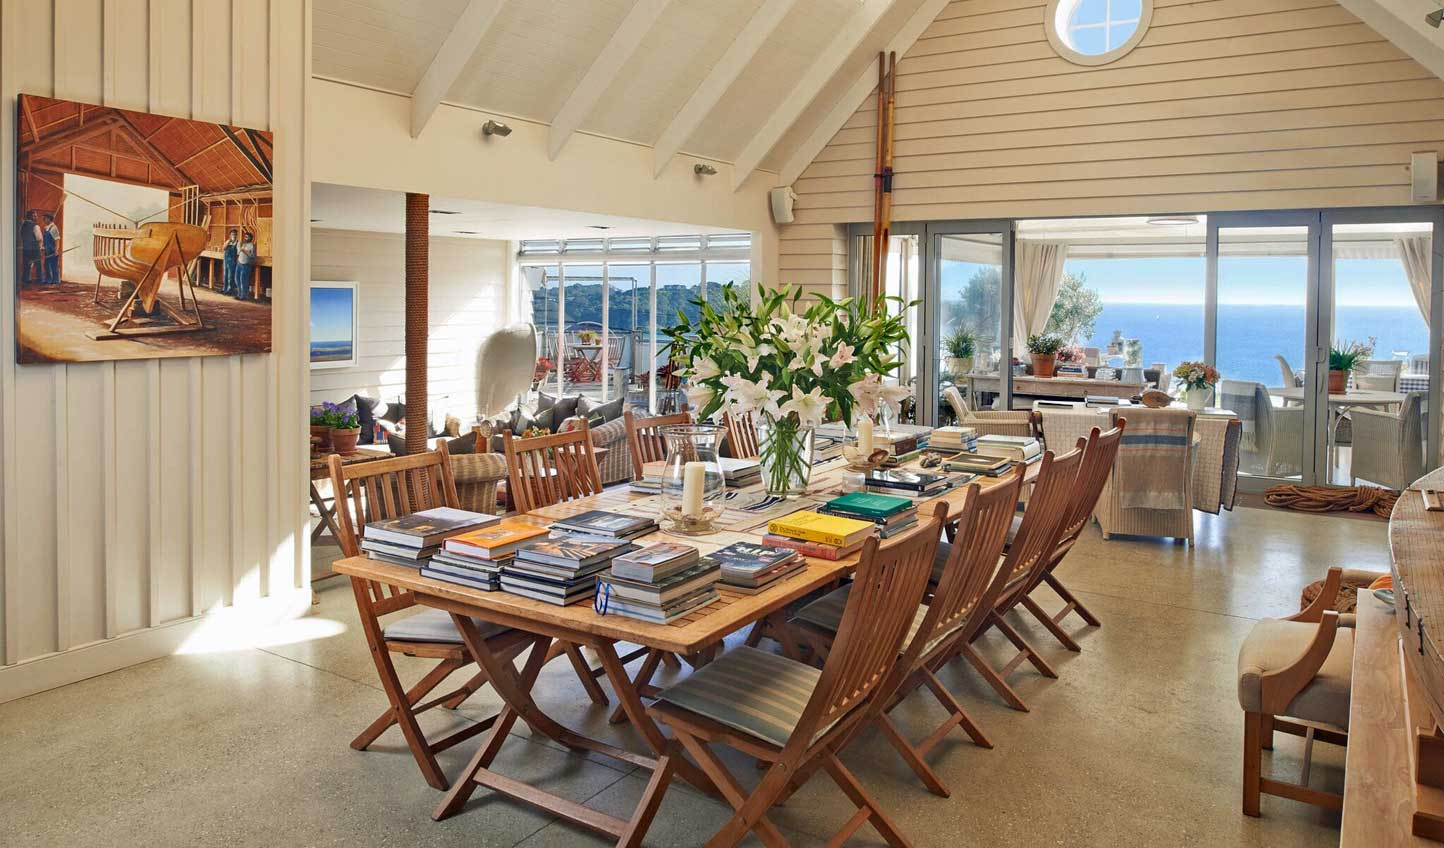 Discover a home from home at The Boatshed